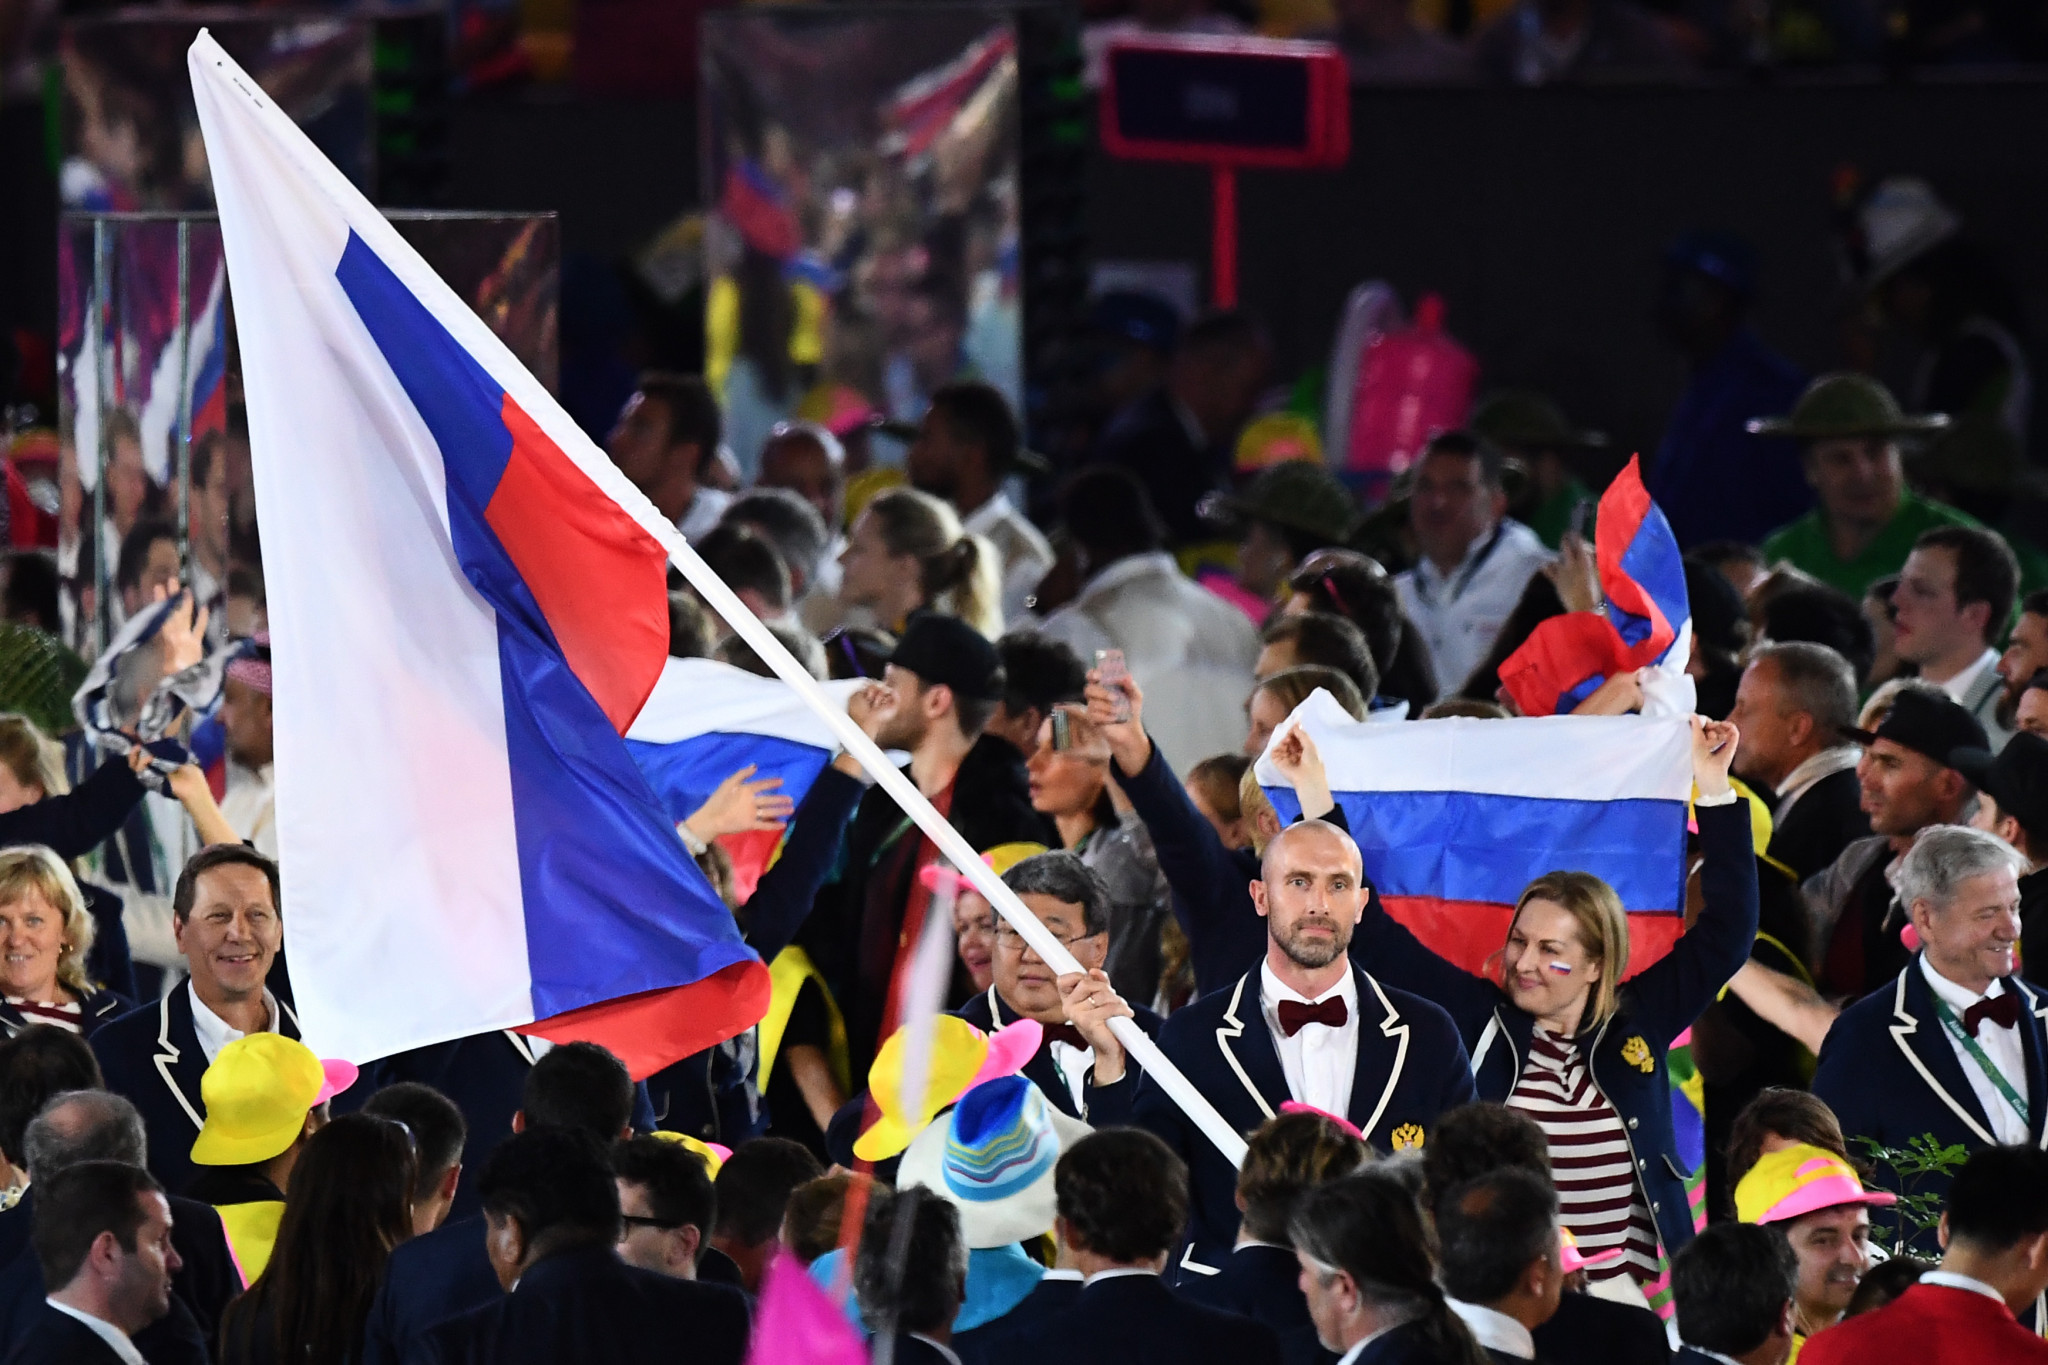 The Russian flag and anthem will not feature at the next two scheduled Olympics and Paralympics, in Tokyo and Beijing, following sanctions imposed by WADA and upheld by CAS ©Getty Images